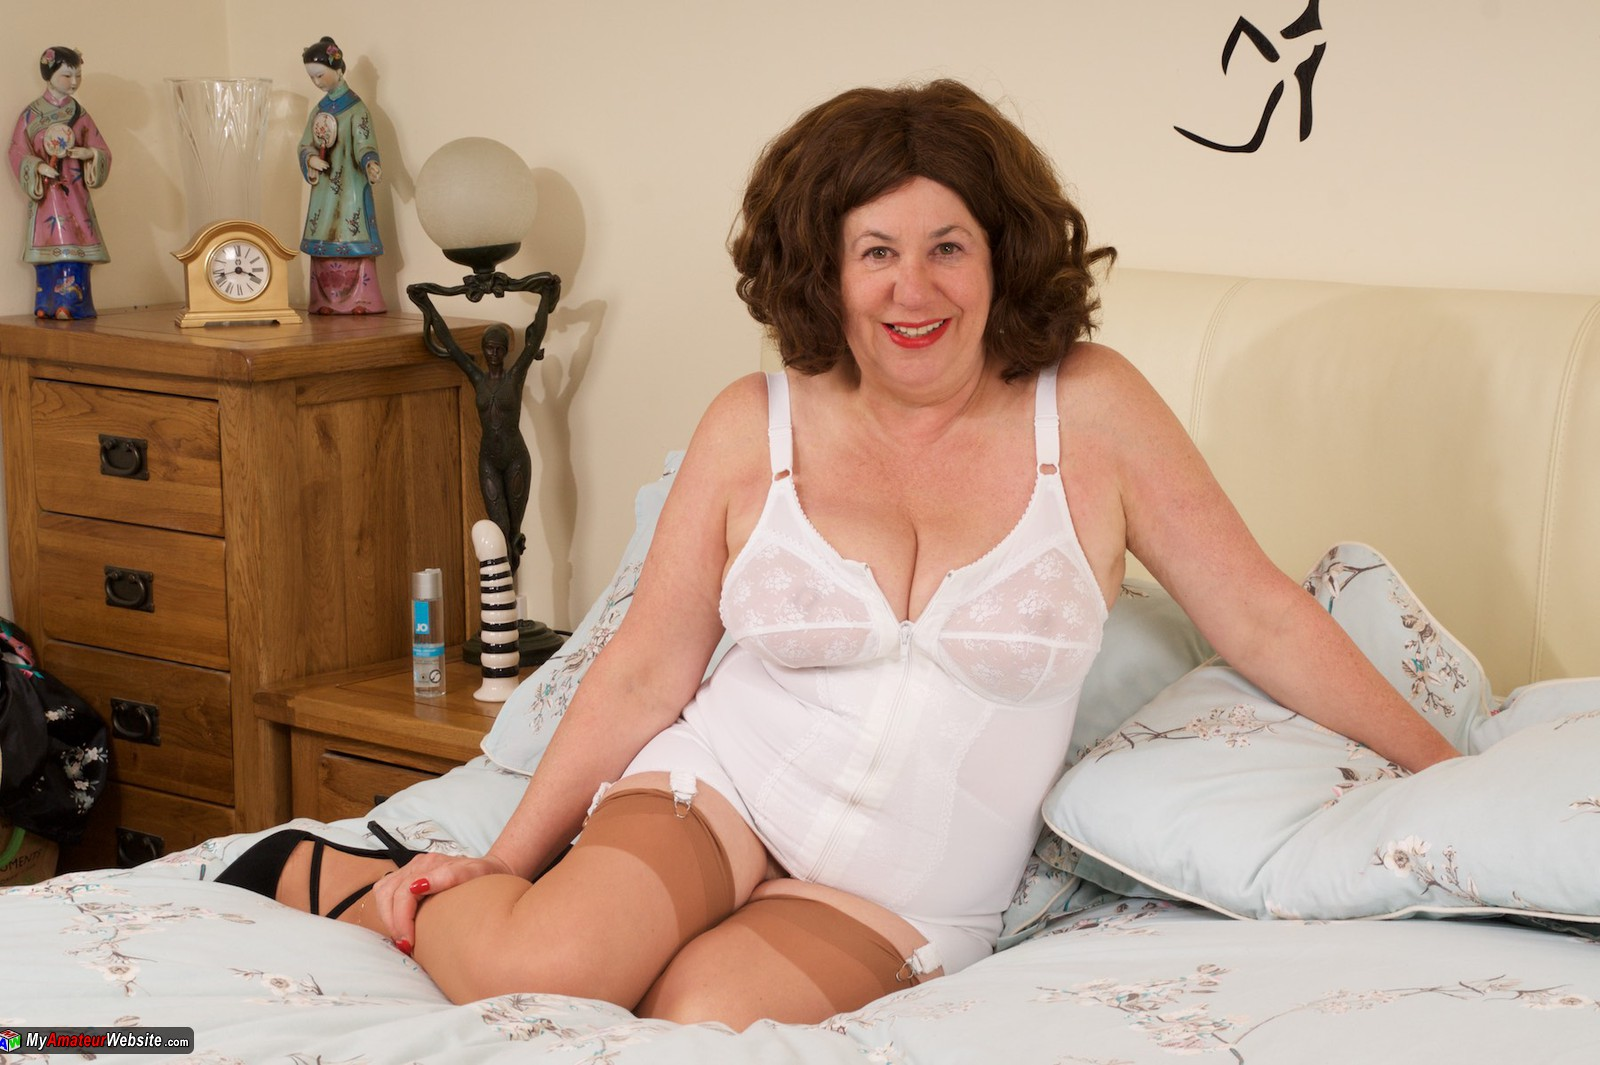 AuntieTrisha - White Retro Basque